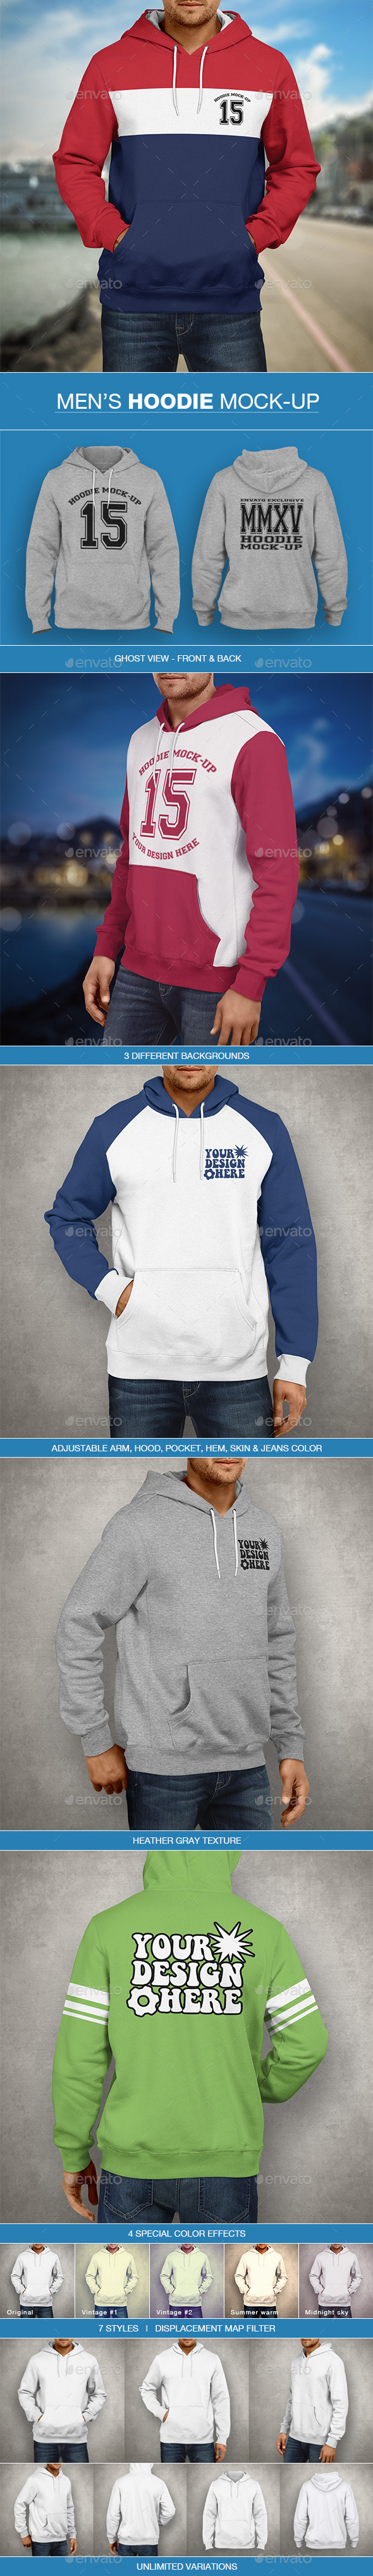 Hoodie Mockup | Men's Edition - Miscellaneous Apparel